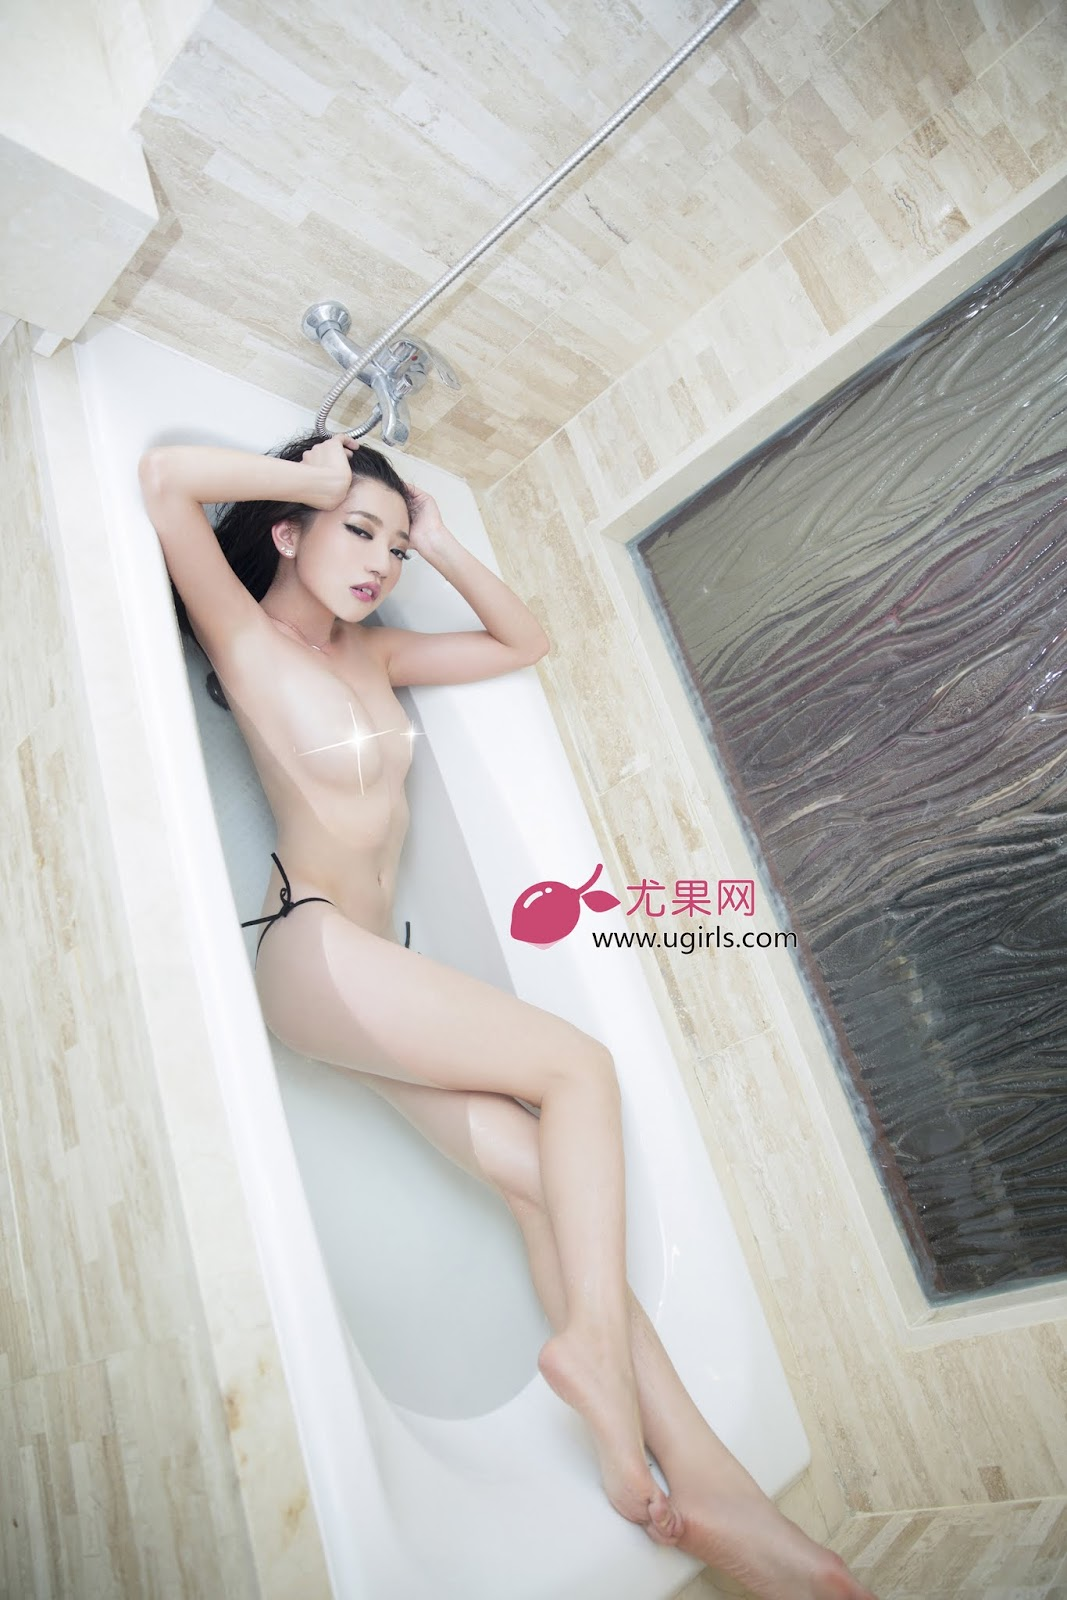 A14A5678 - Hot Model UGIRLS NO.8